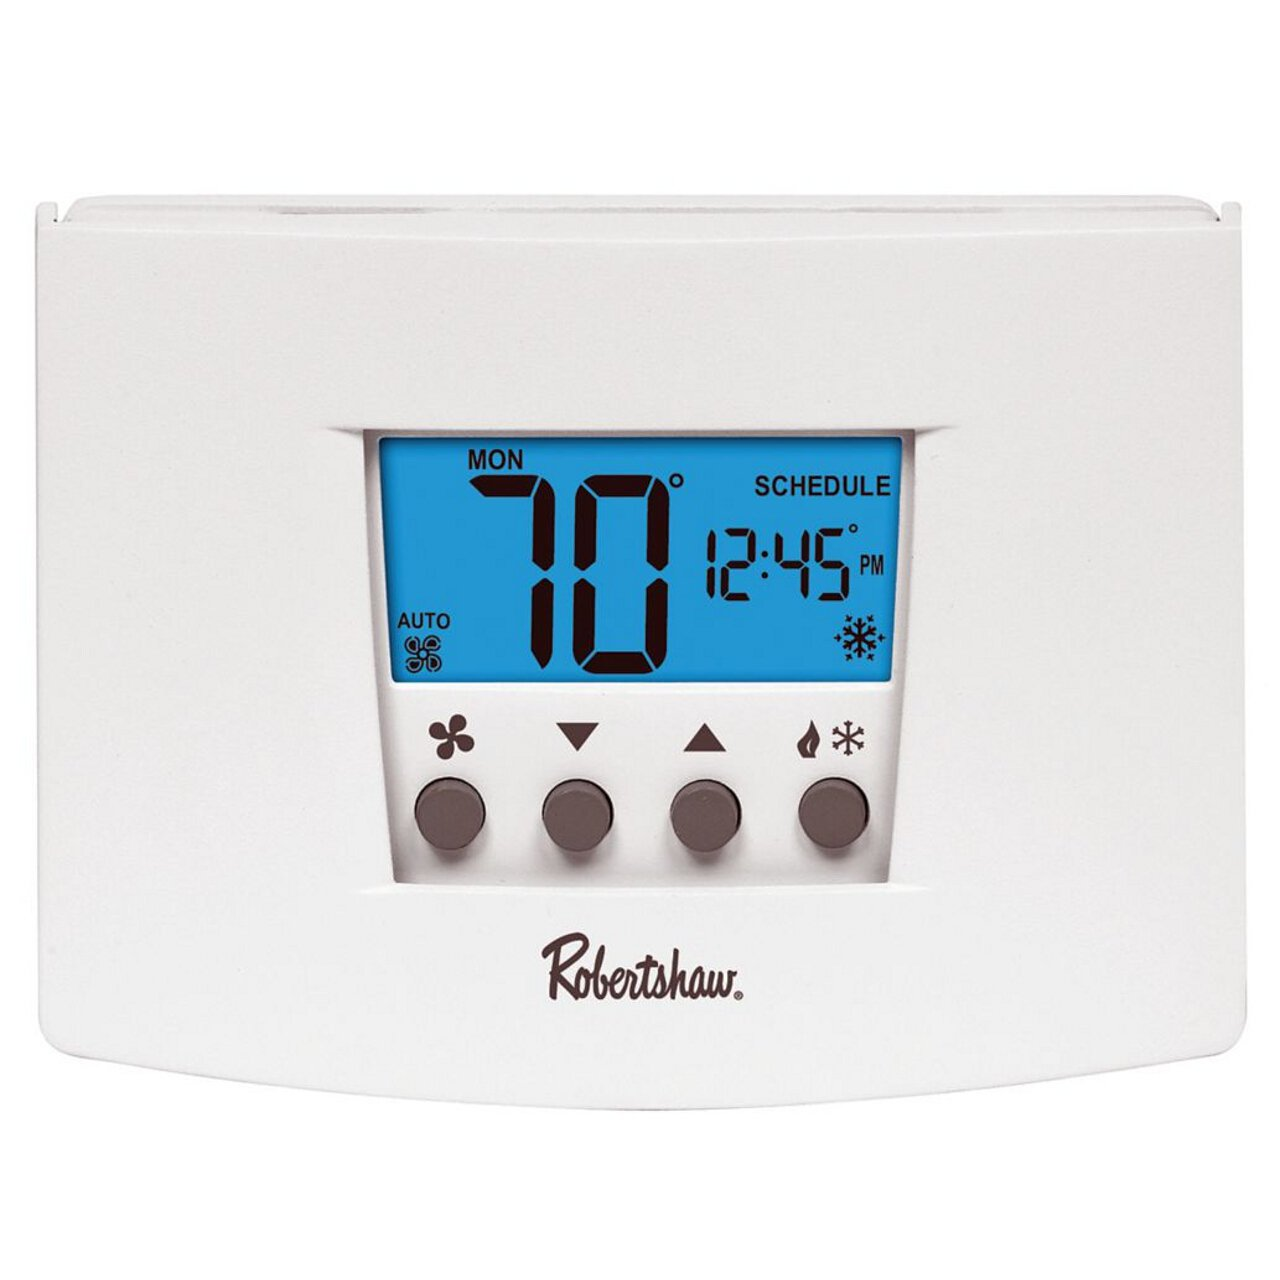 Best Rated In Home Nonprogrammable Thermostats Helpful Customer Oil Furnace Thermostat Wiring Diagram Robertshaw Rs4110 Heat Pump Single Stage 1 Cool Digital Non Programmable